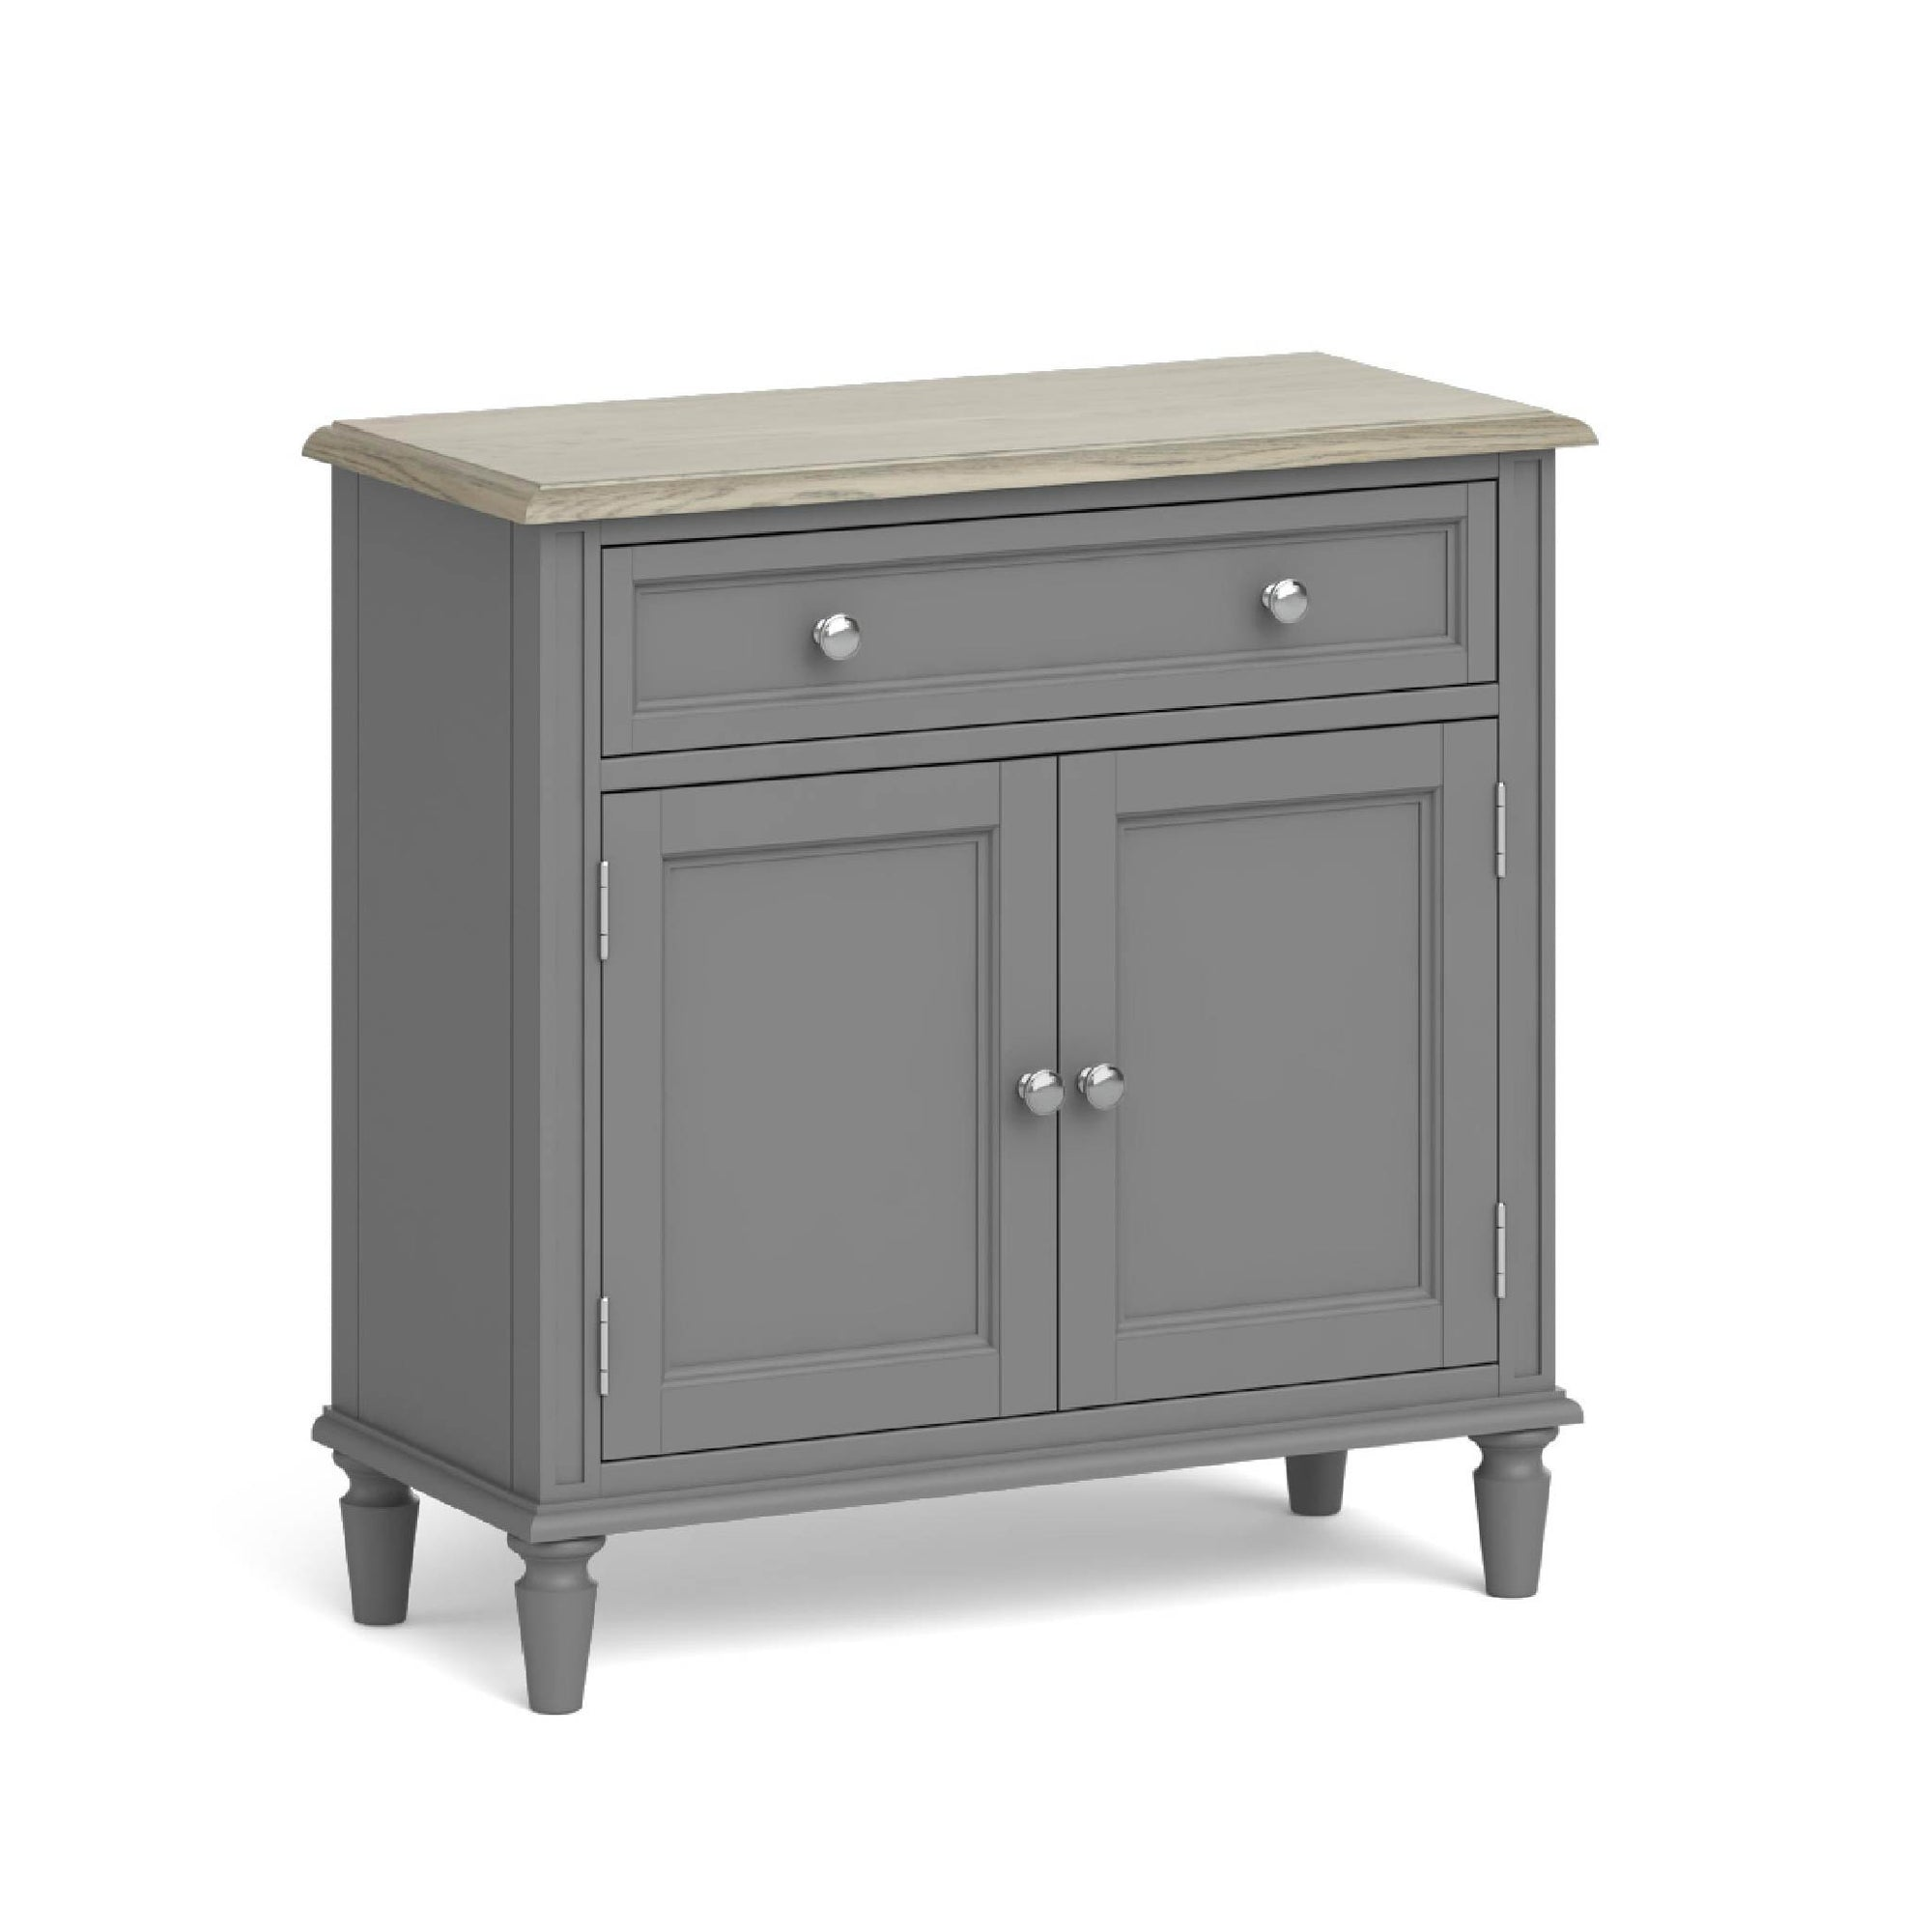 The Mulsanne Grey French Style Small Sideboard by Roseland Furniture